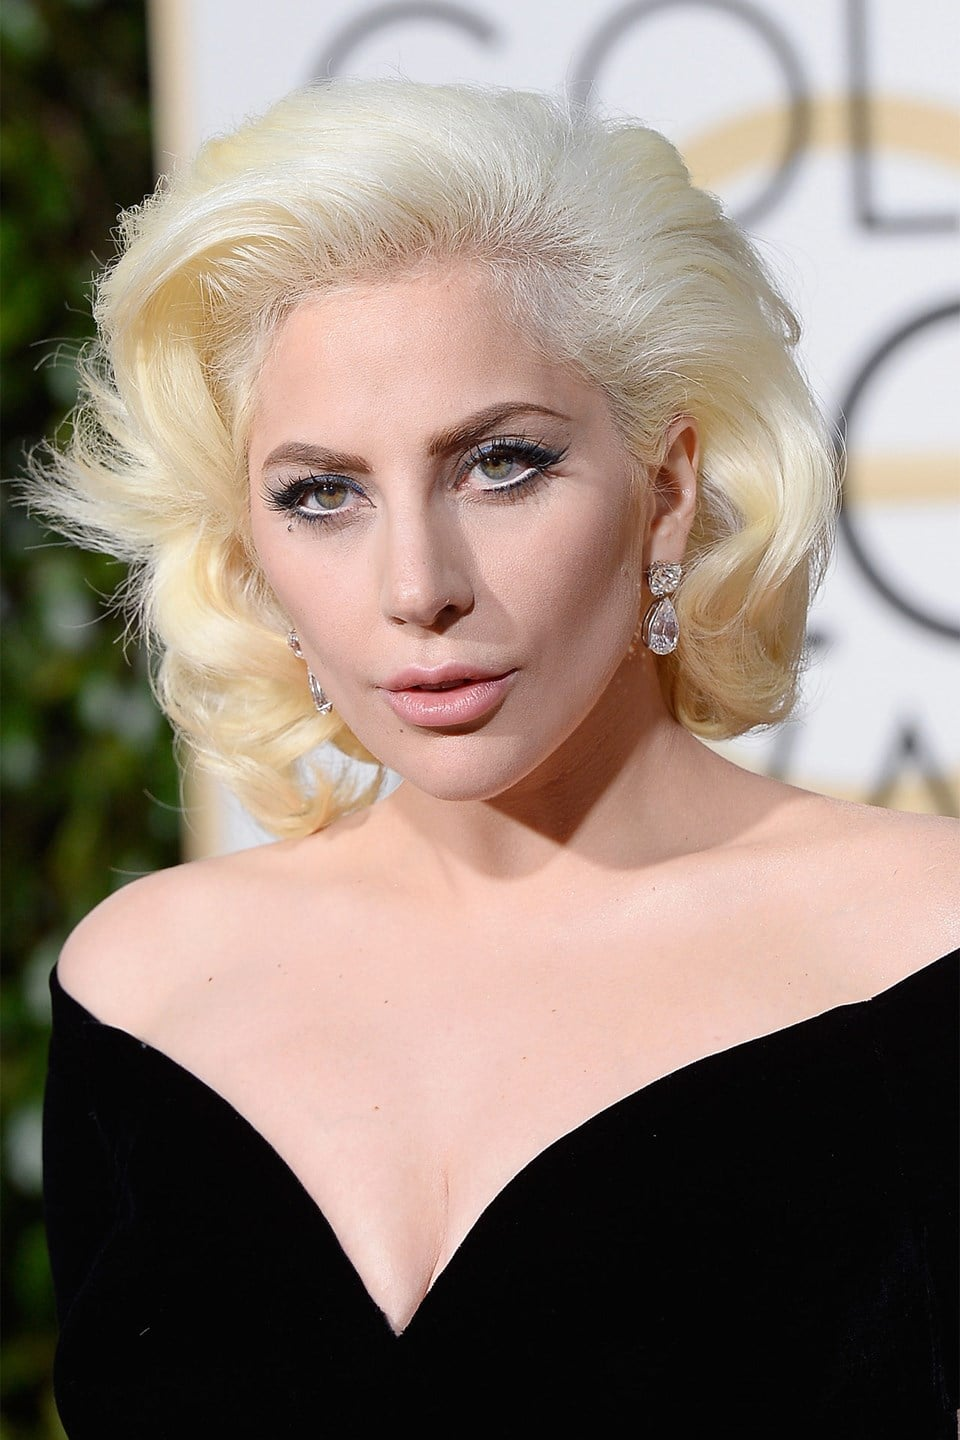 Lady-Gaga-beauty-Glamour-10Jan15-Getty_b_960x1440.jpg